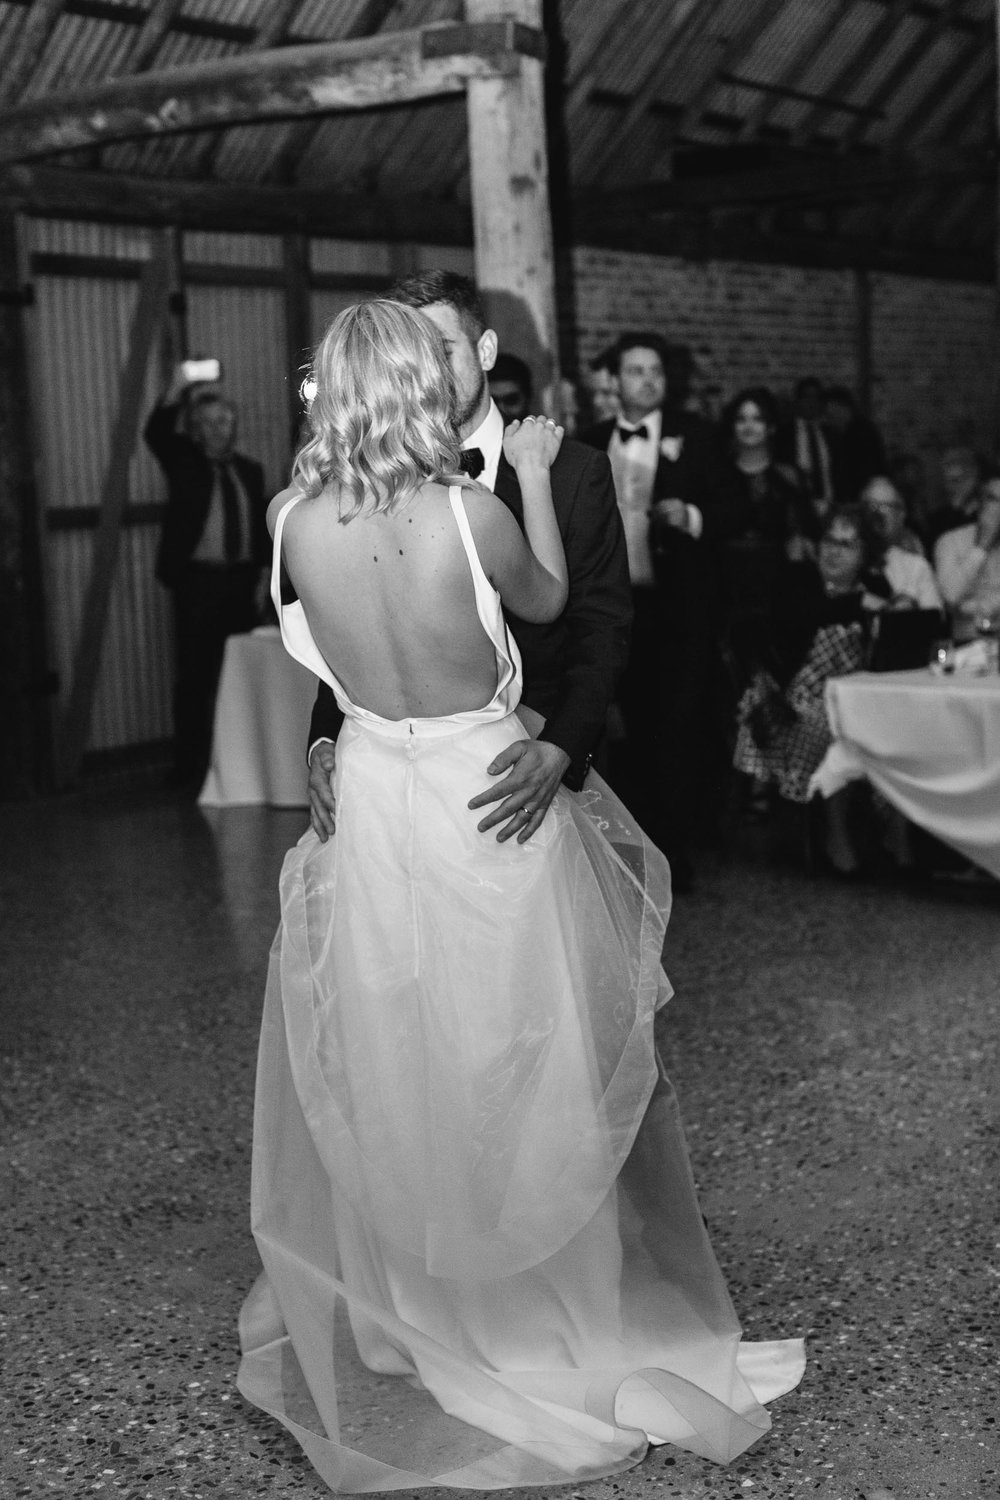 Kas-Richards-Wedding-Photographer-Country-Winery-Wedding-One-Day-Bridal-Gown-72.jpg